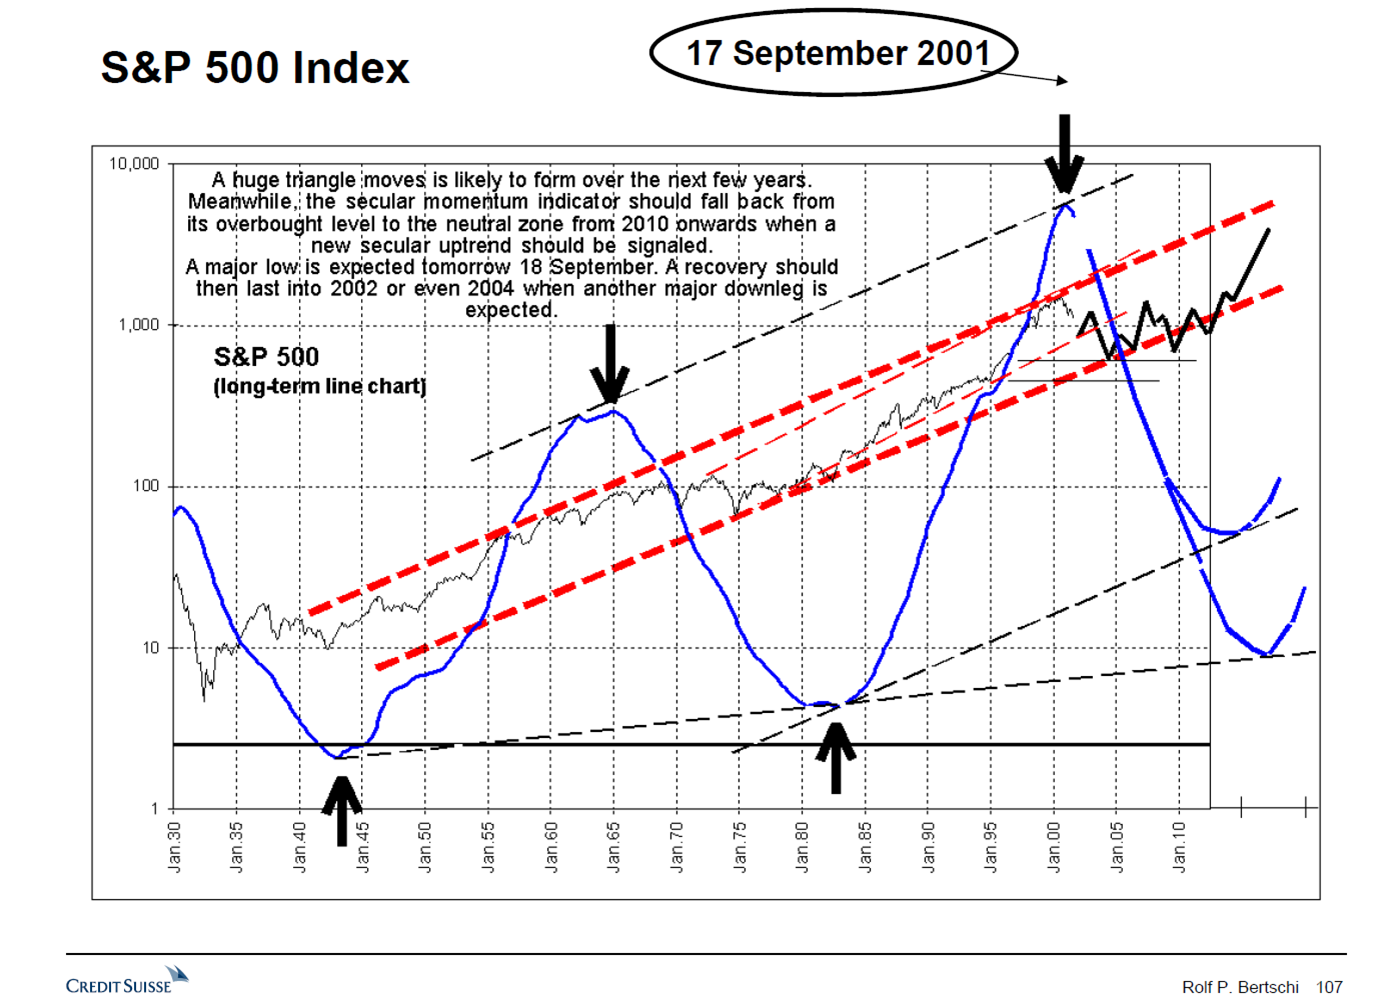 In  September 2001 , I called for the end of the US secular uptrend of the 1980s and 1990s (Sell-of-a-Generation). I did forecast a series of bear and bull markets (Triangle), which would relieve the Secular Momentum Indicator from its extremely overbought level which it had reached in 2001.I forecast this Triangle and the decline in the Secular Momentum Indicator to persist until around 2010. Moreover, I forecast that this secular downtrend would be followed by a new secular uptrend (Buy-of-a-Generation), beginning at the next decade, i.e. around 2010. See the chart below. It shows that this 10-year outlook was stunningly correct.